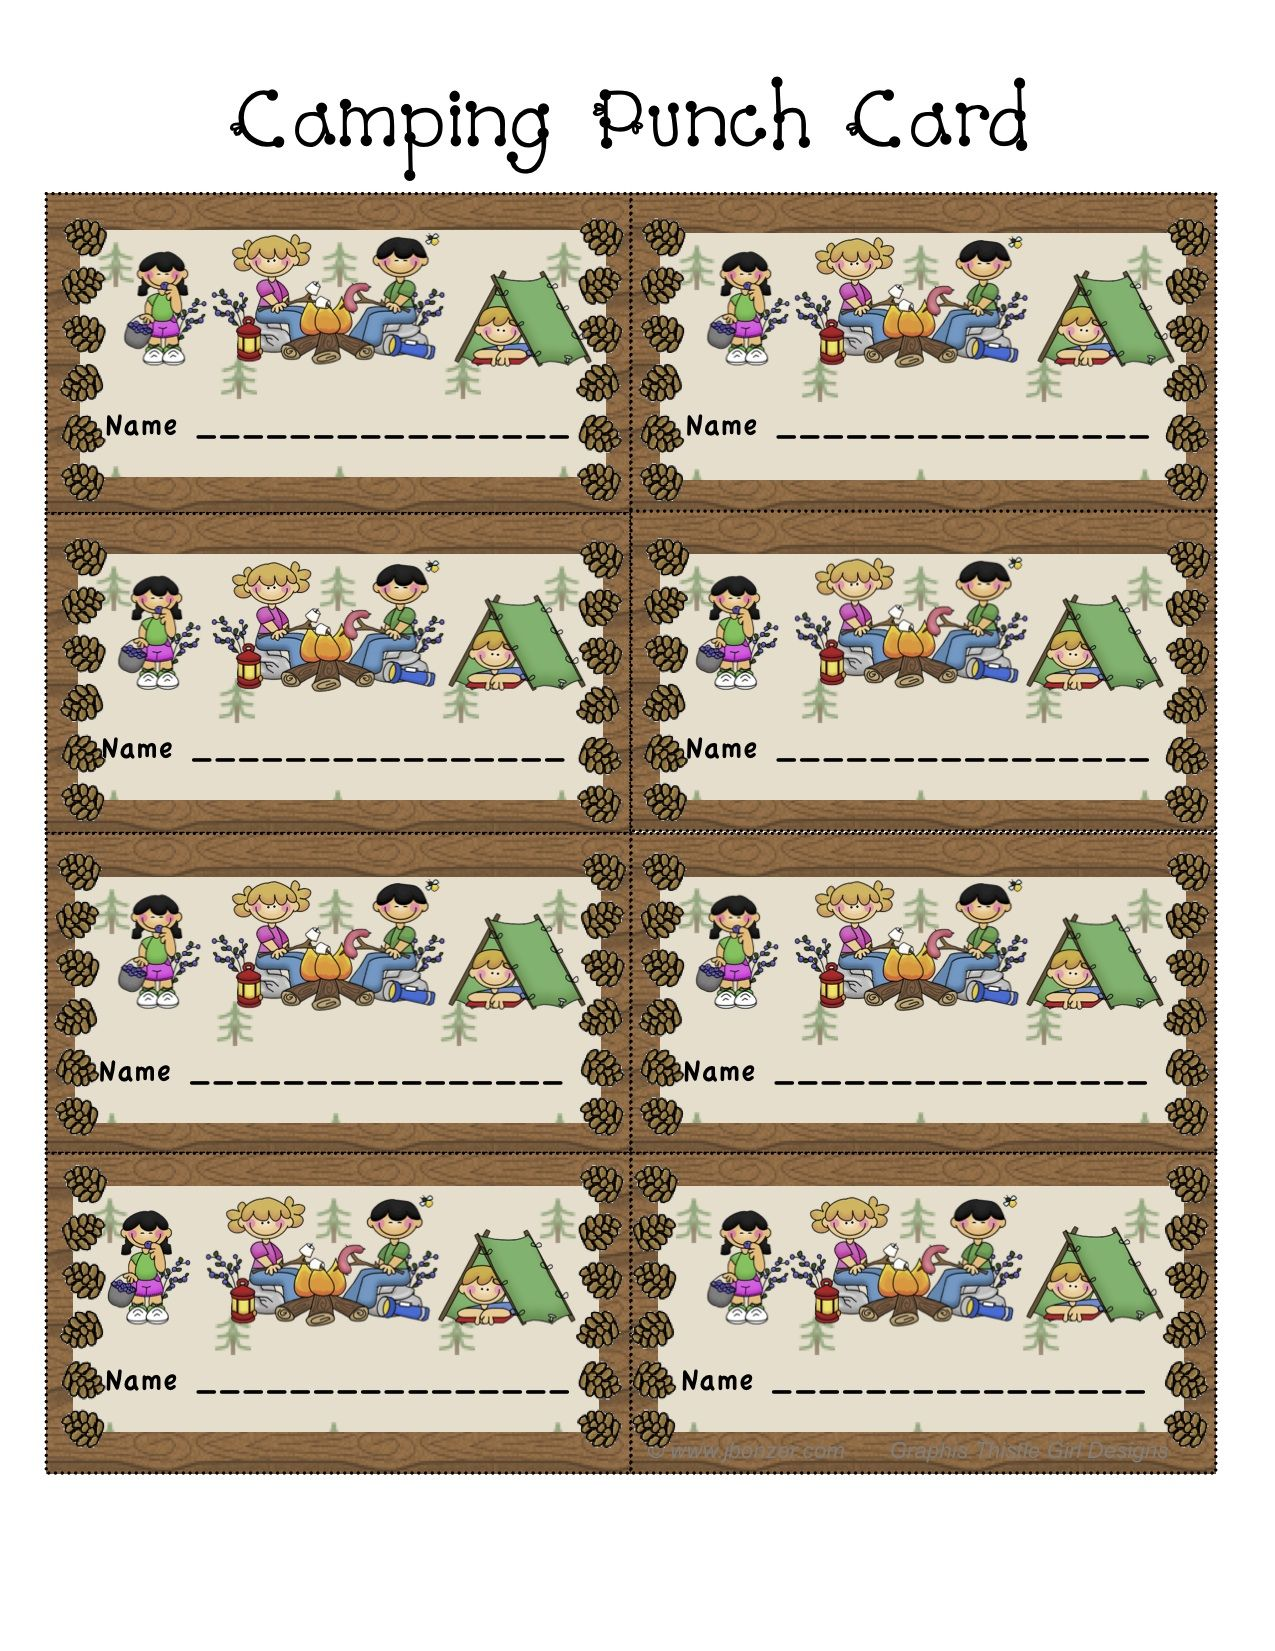 Ahh Camping Theme Punch Card What A Great Idea Many